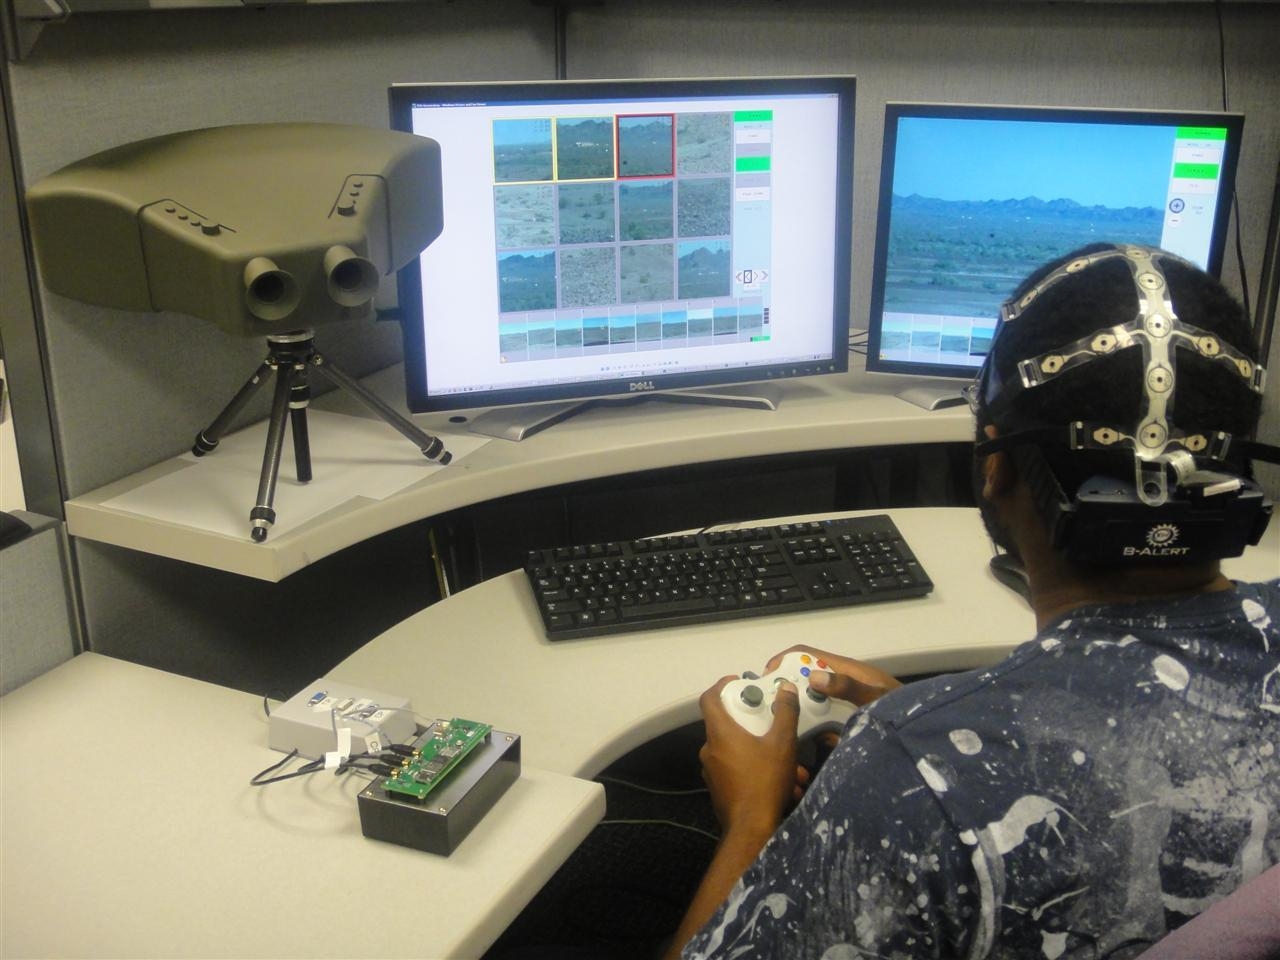 The Cognitive Technology Threat Warning System (CT2WS) uses an EEG cap to detect the operator's brainwaves